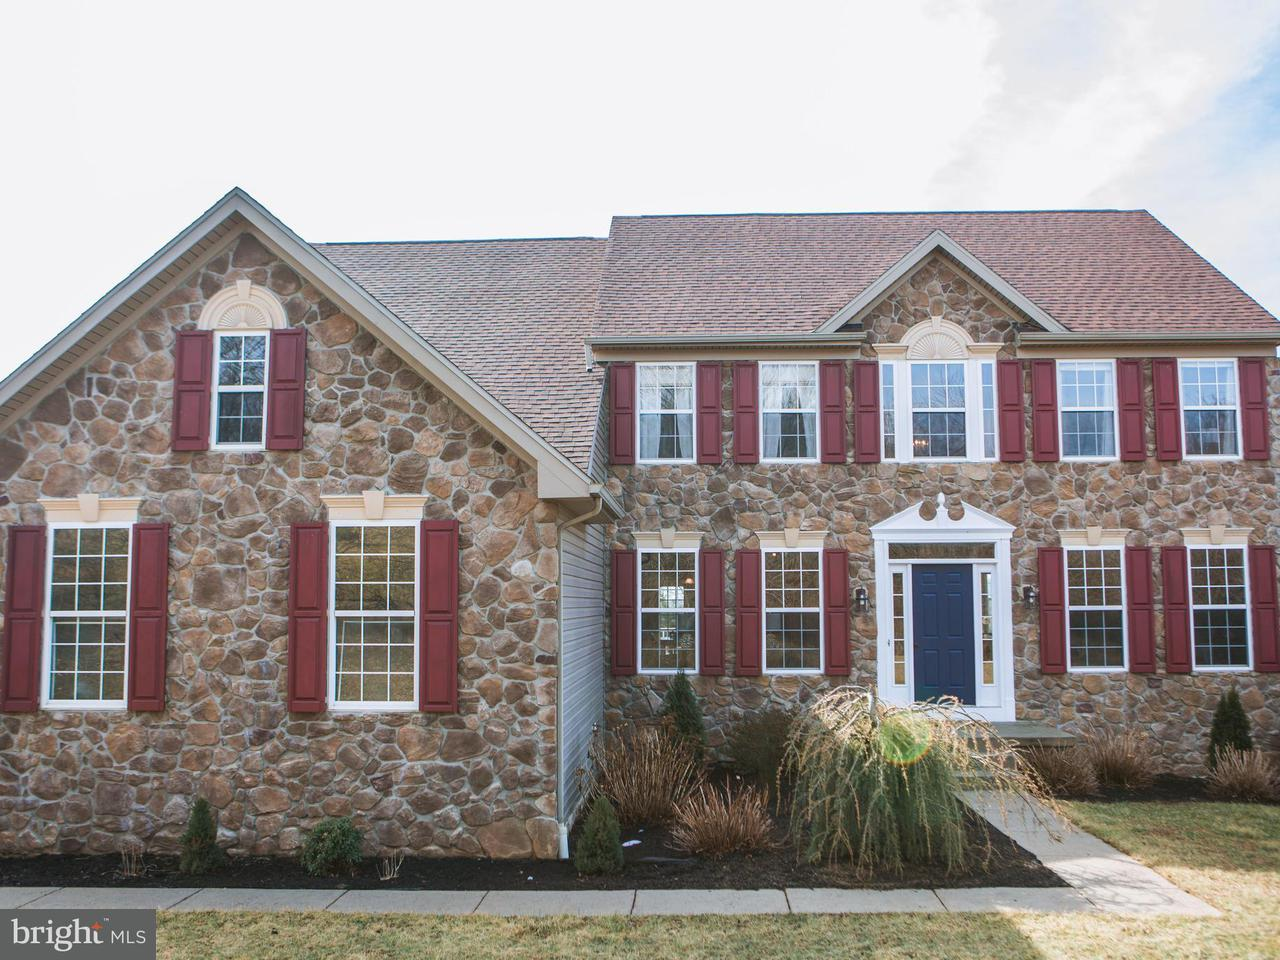 Single Family for Sale at 1264 Summerswood Dr St. Thomas, Pennsylvania 17252 United States